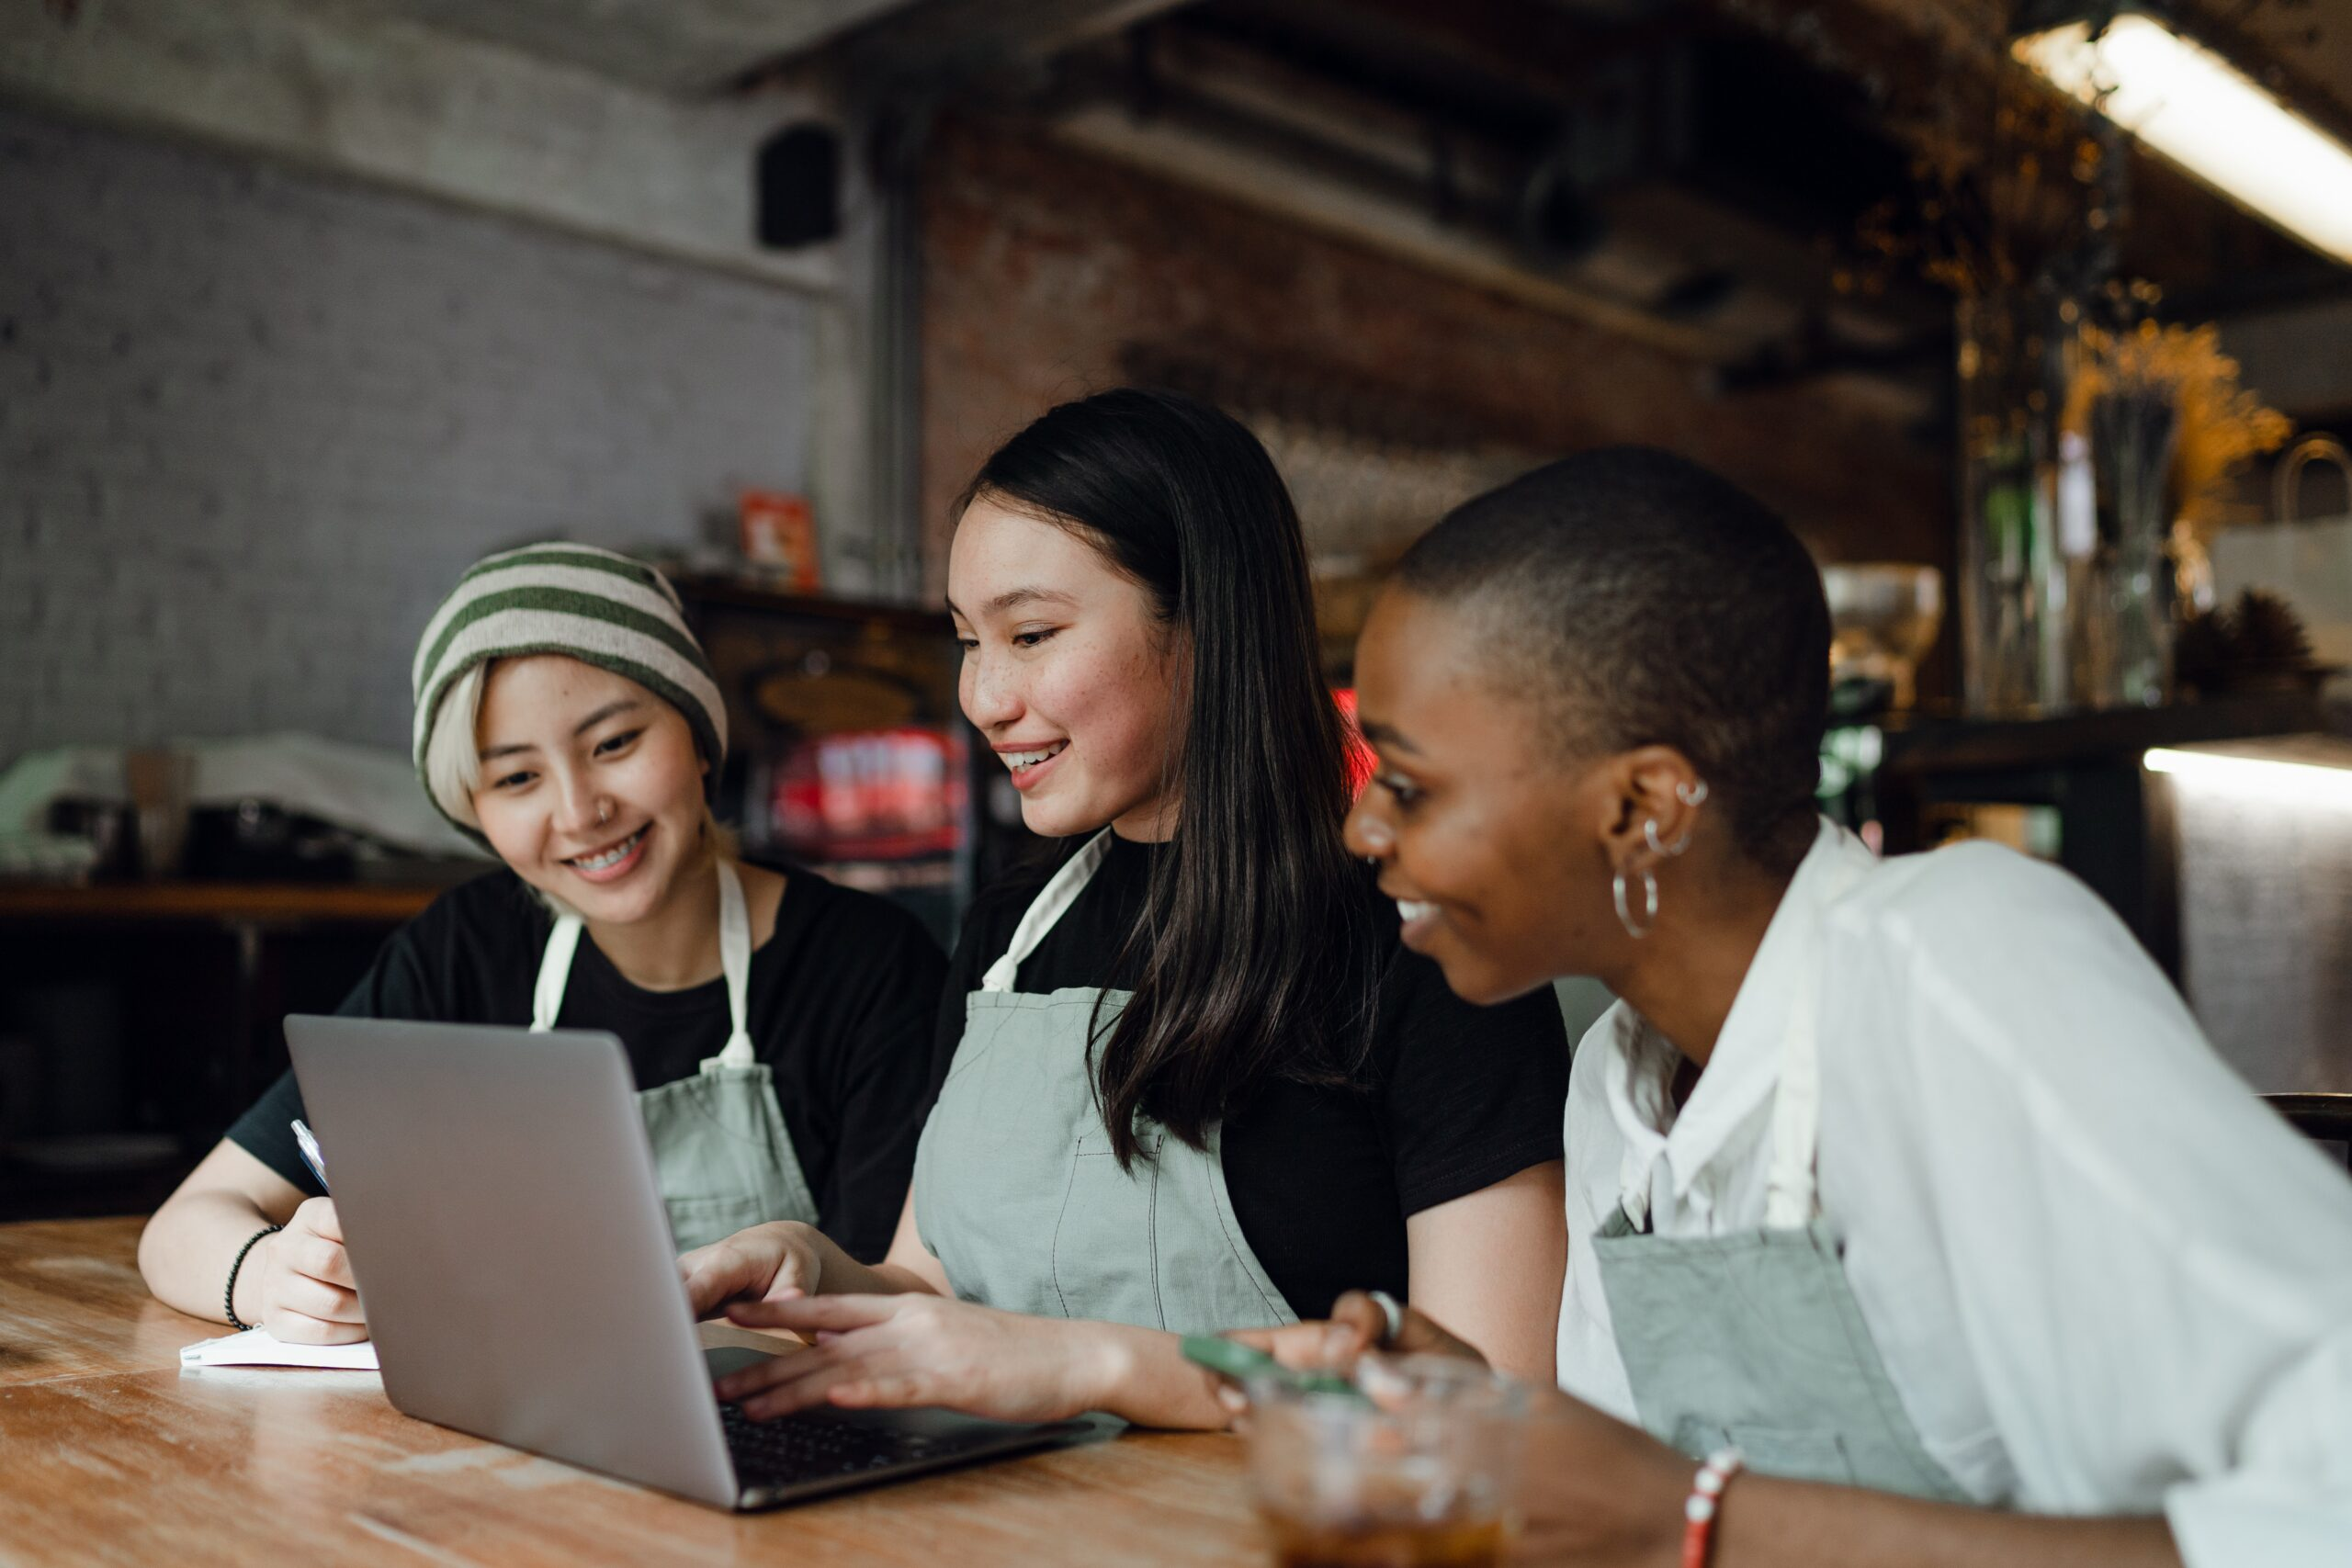 Three women using a laptop together in a café